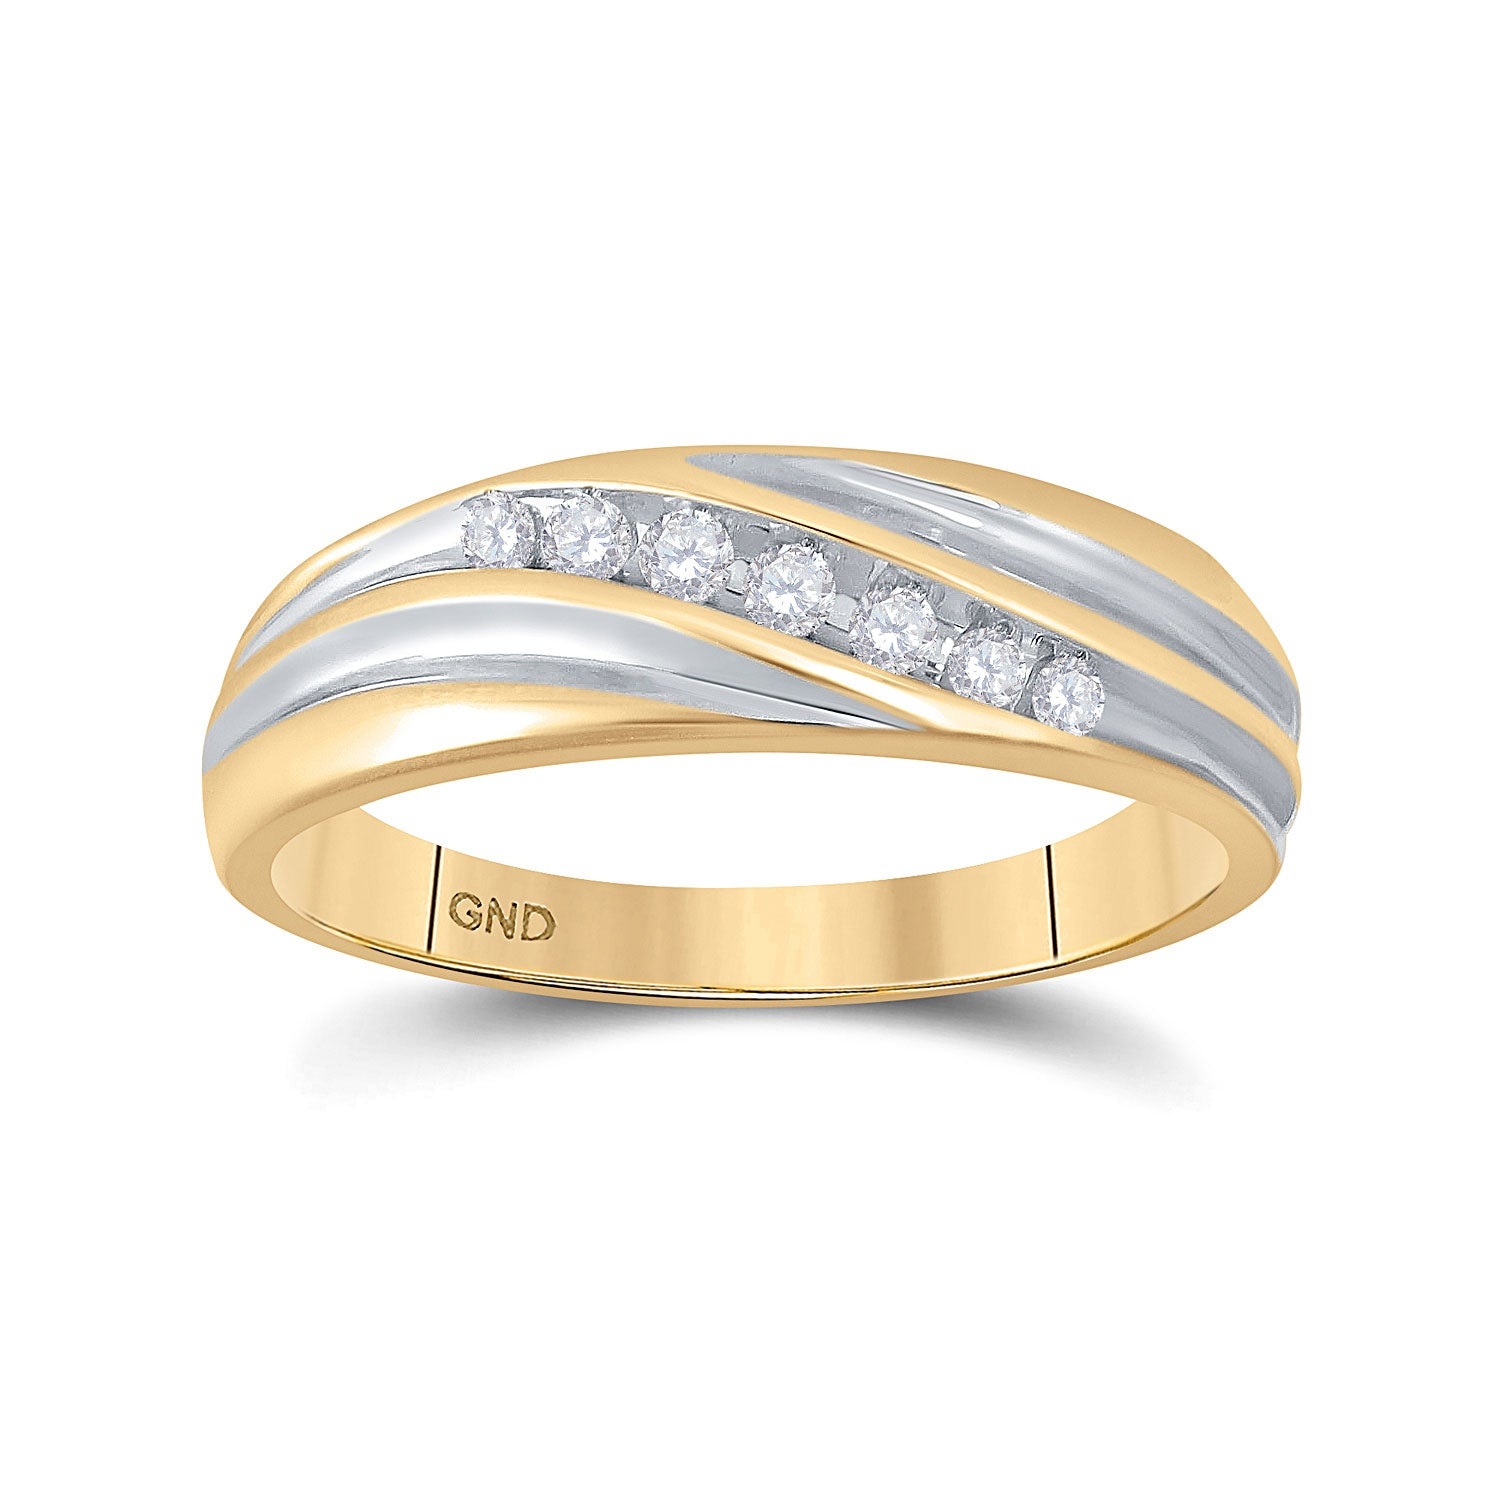 10kt Two-tone Gold Mens Round Diamond Wedding Band Ring 1/6 Cttw